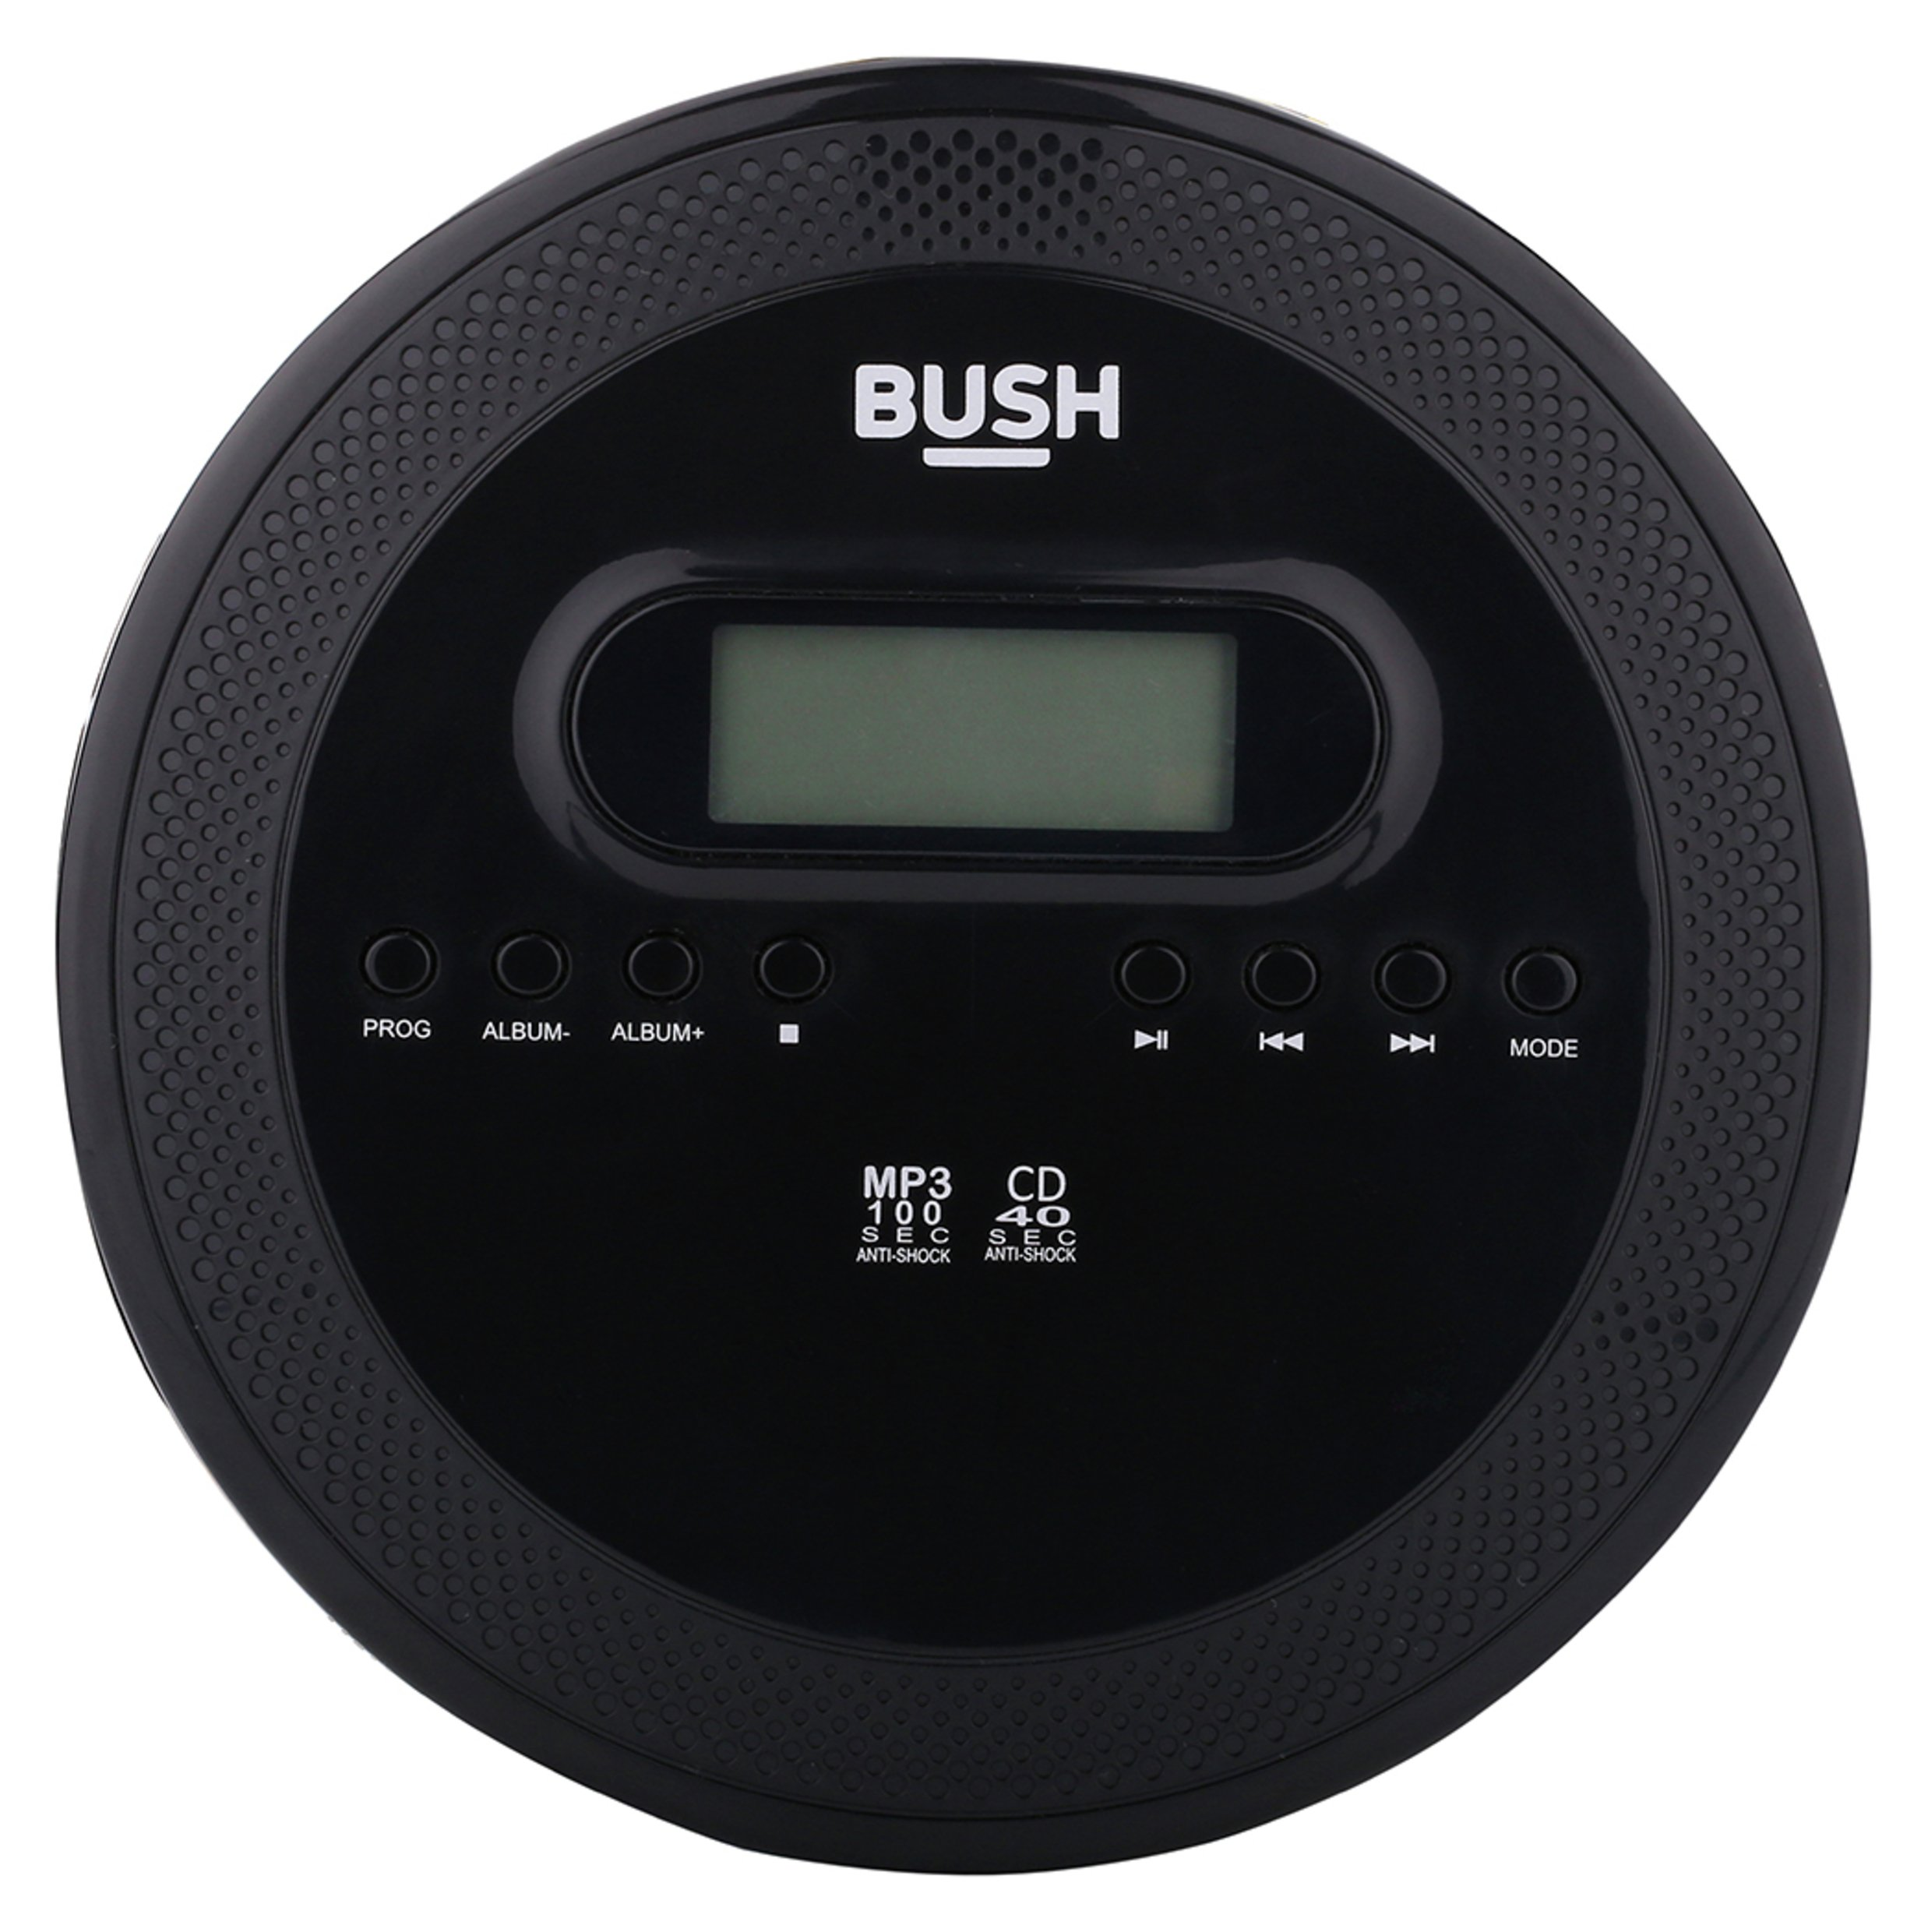 Image of Bush - CD Player with MP3 Playback